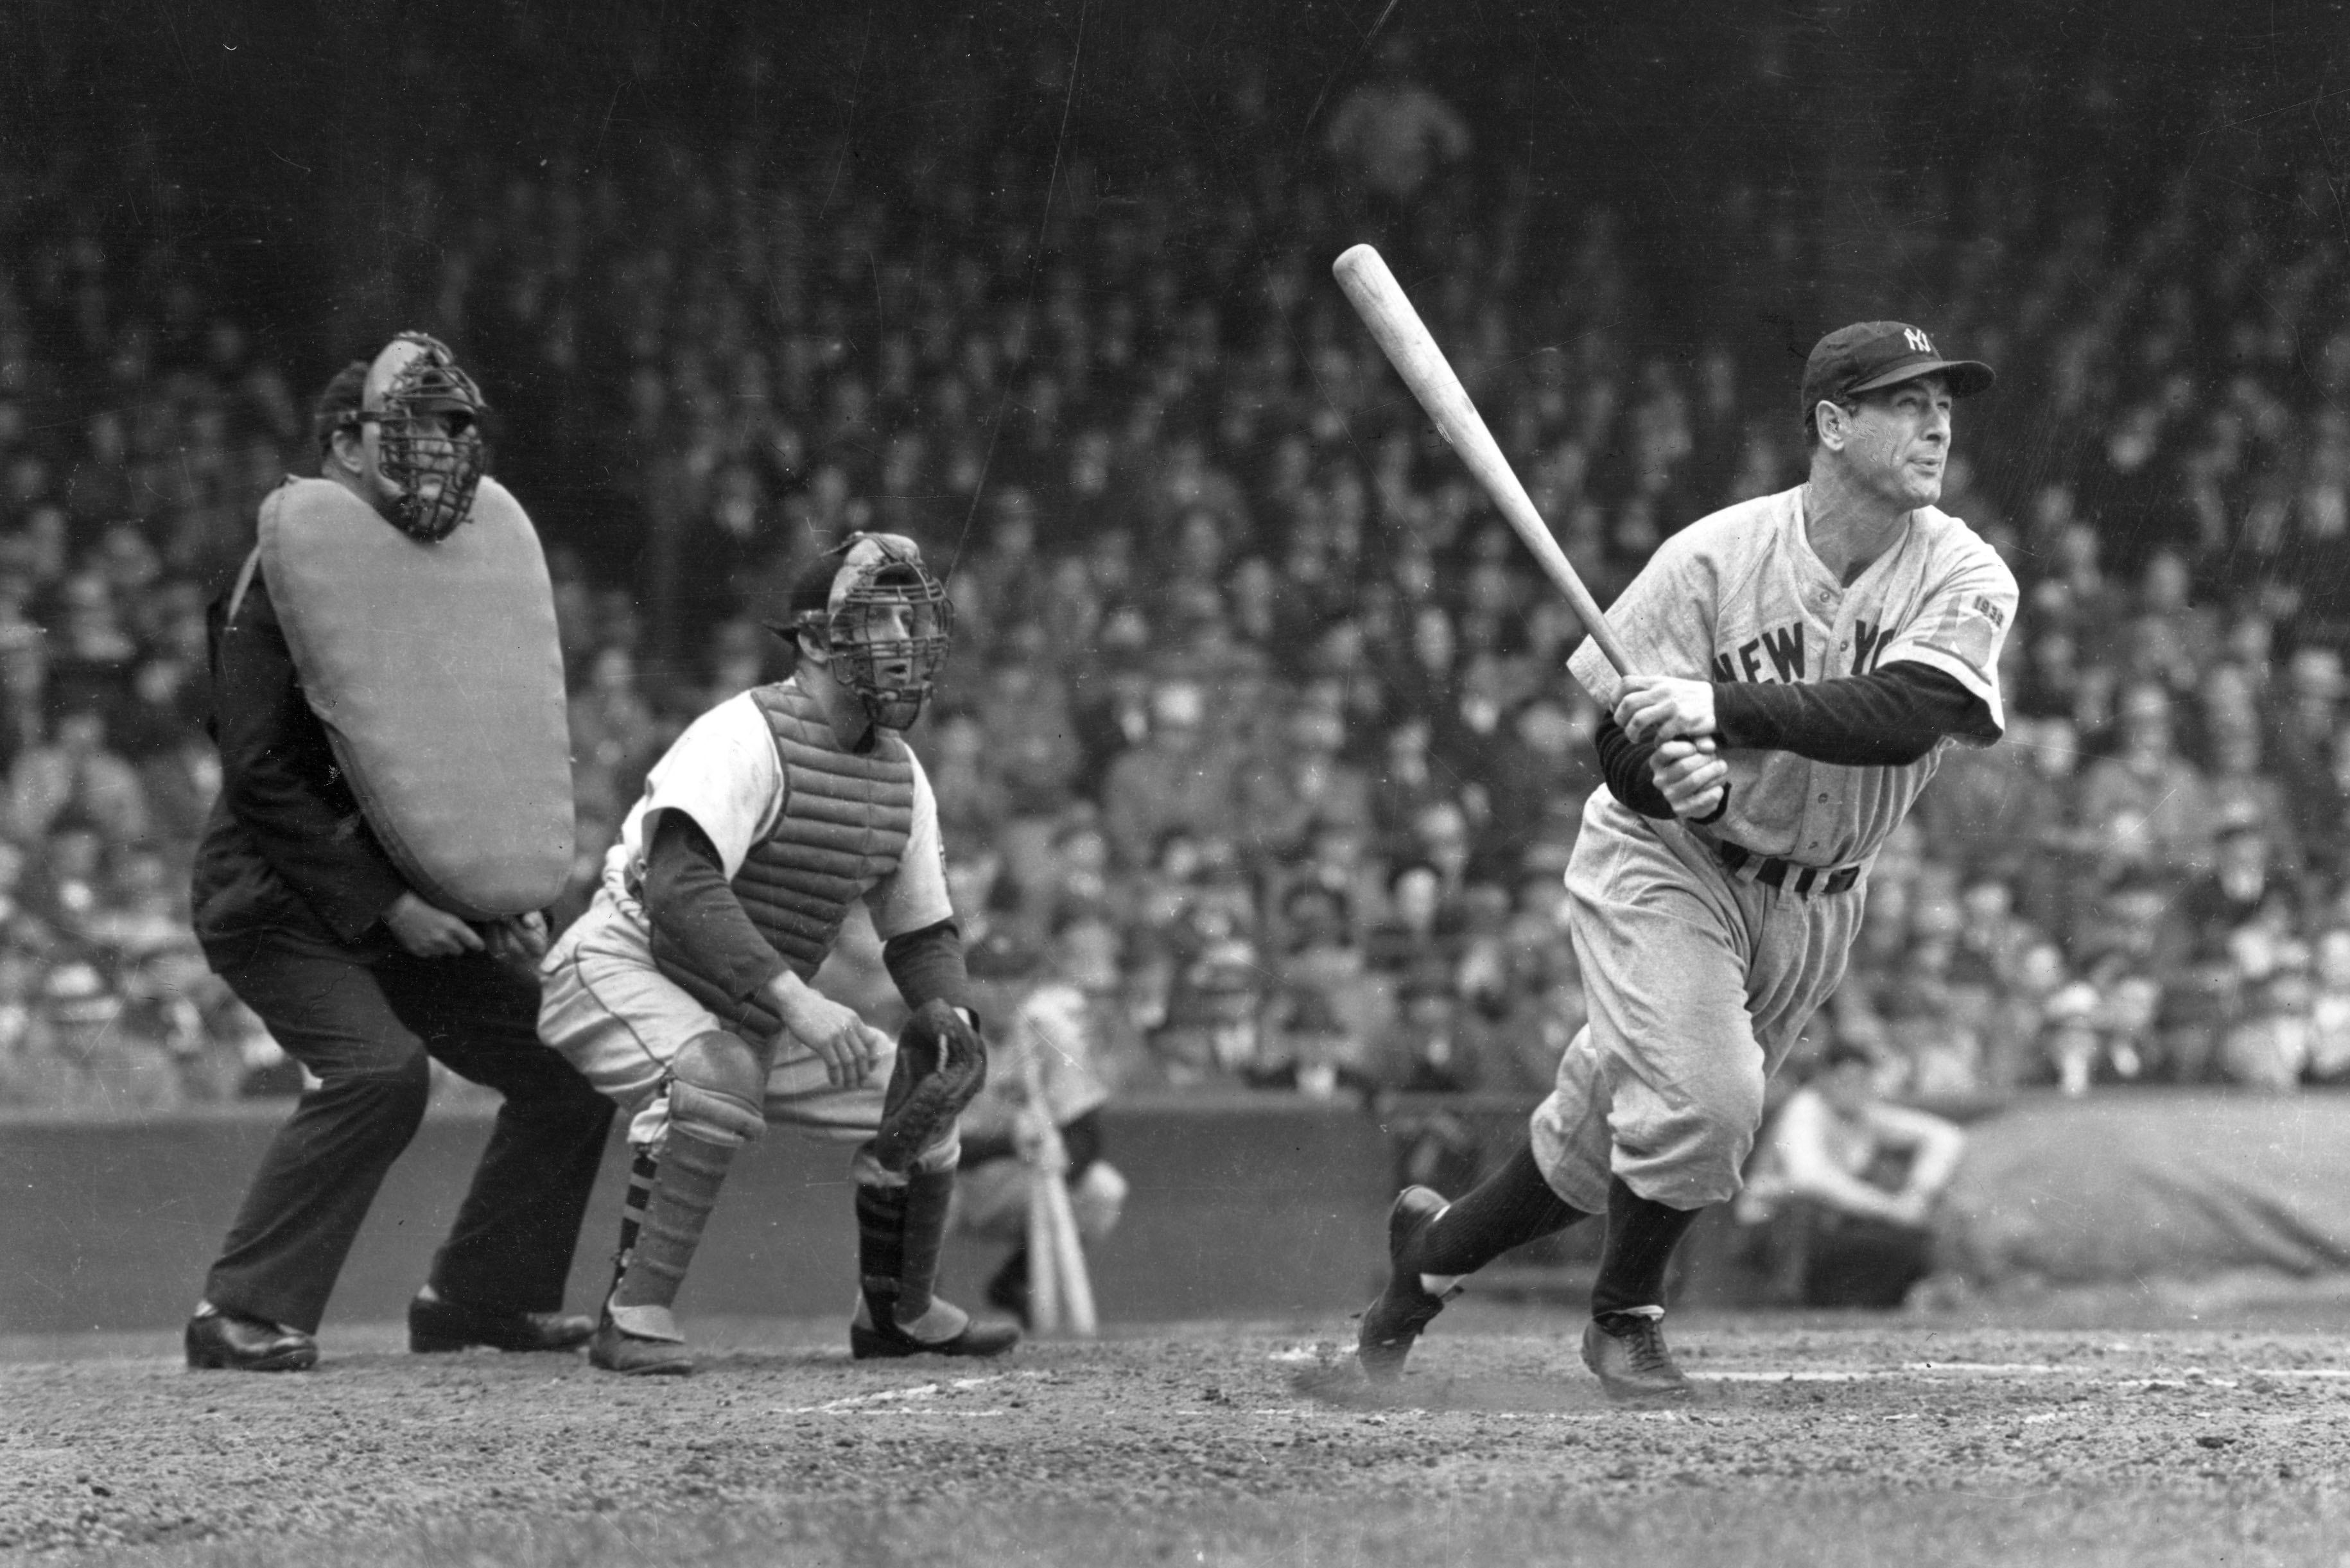 Lou Gehrig in the batter's box